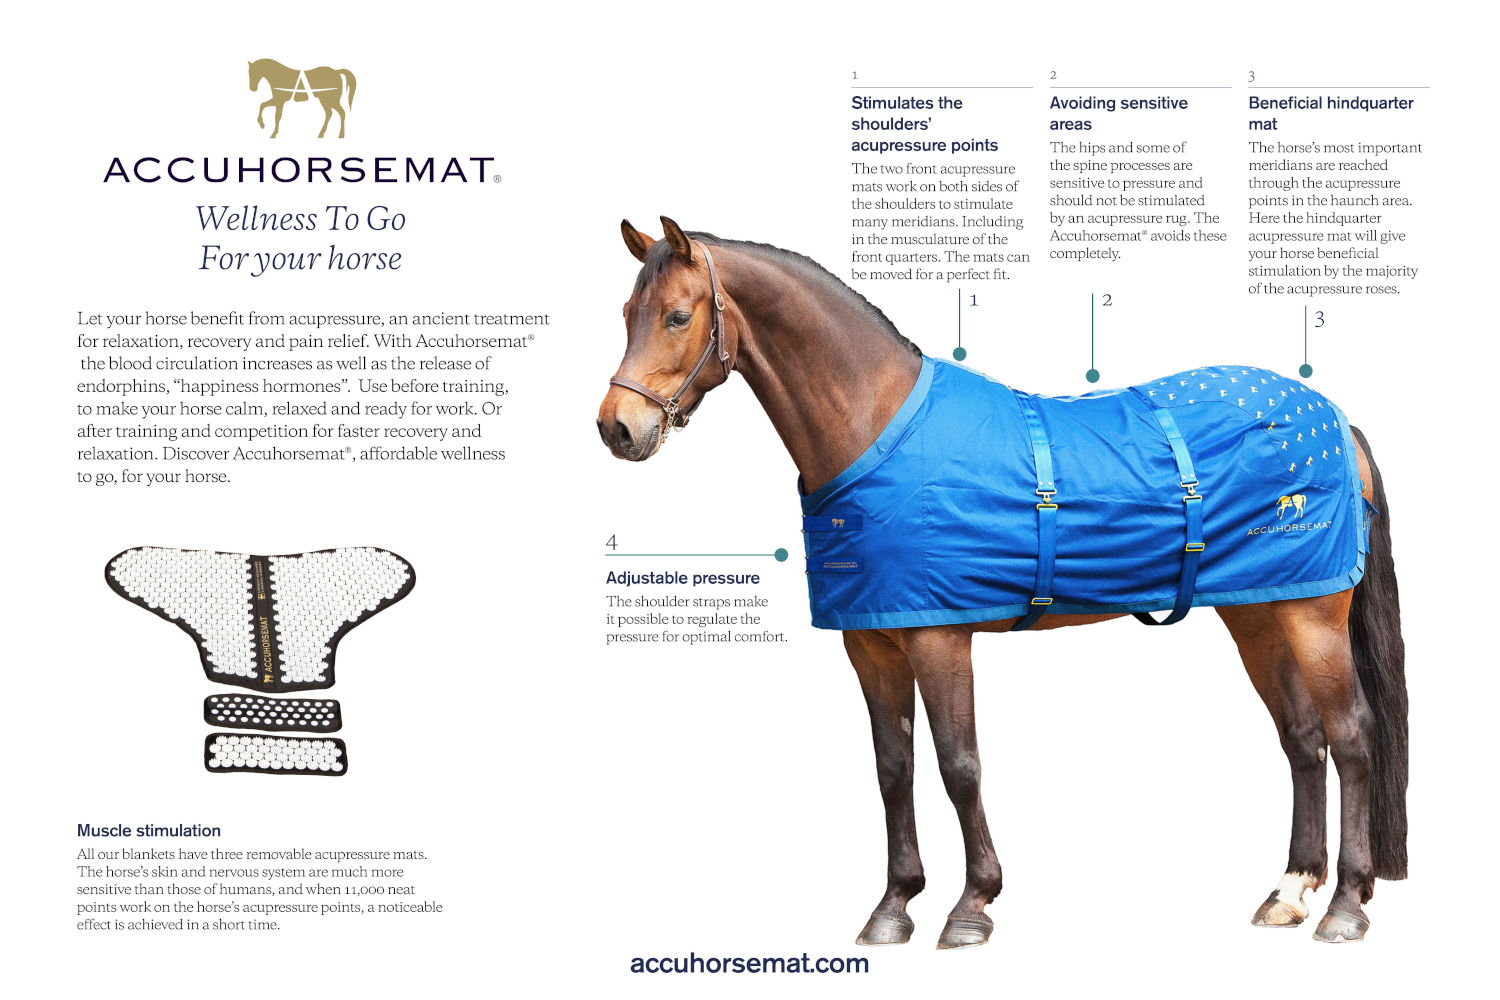 For the horse - accuhorsemat